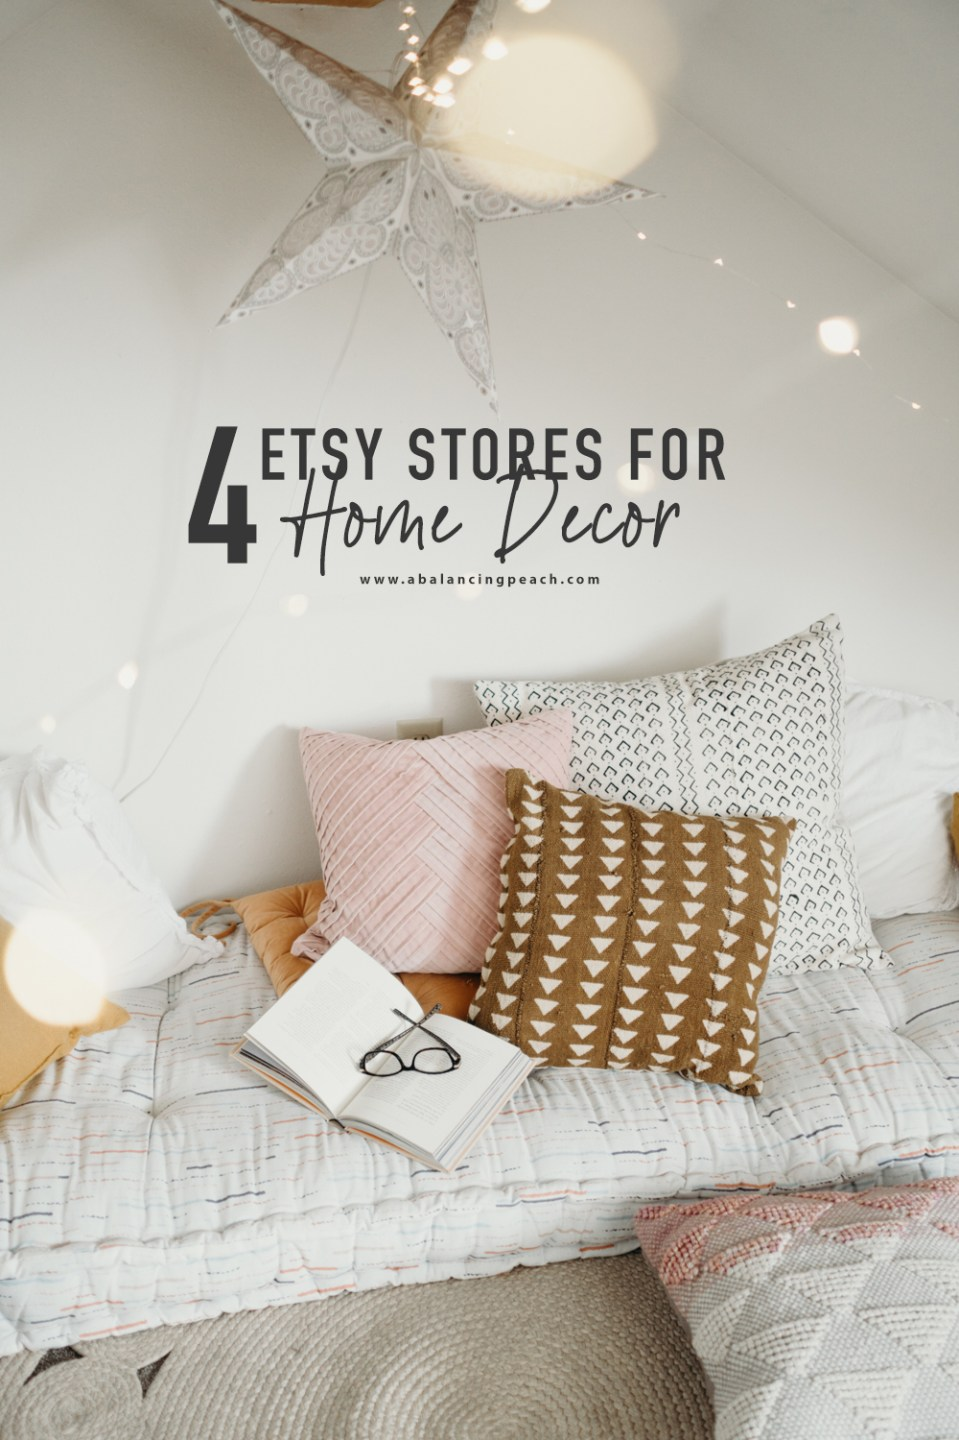 Etsy Stores for Home Decor